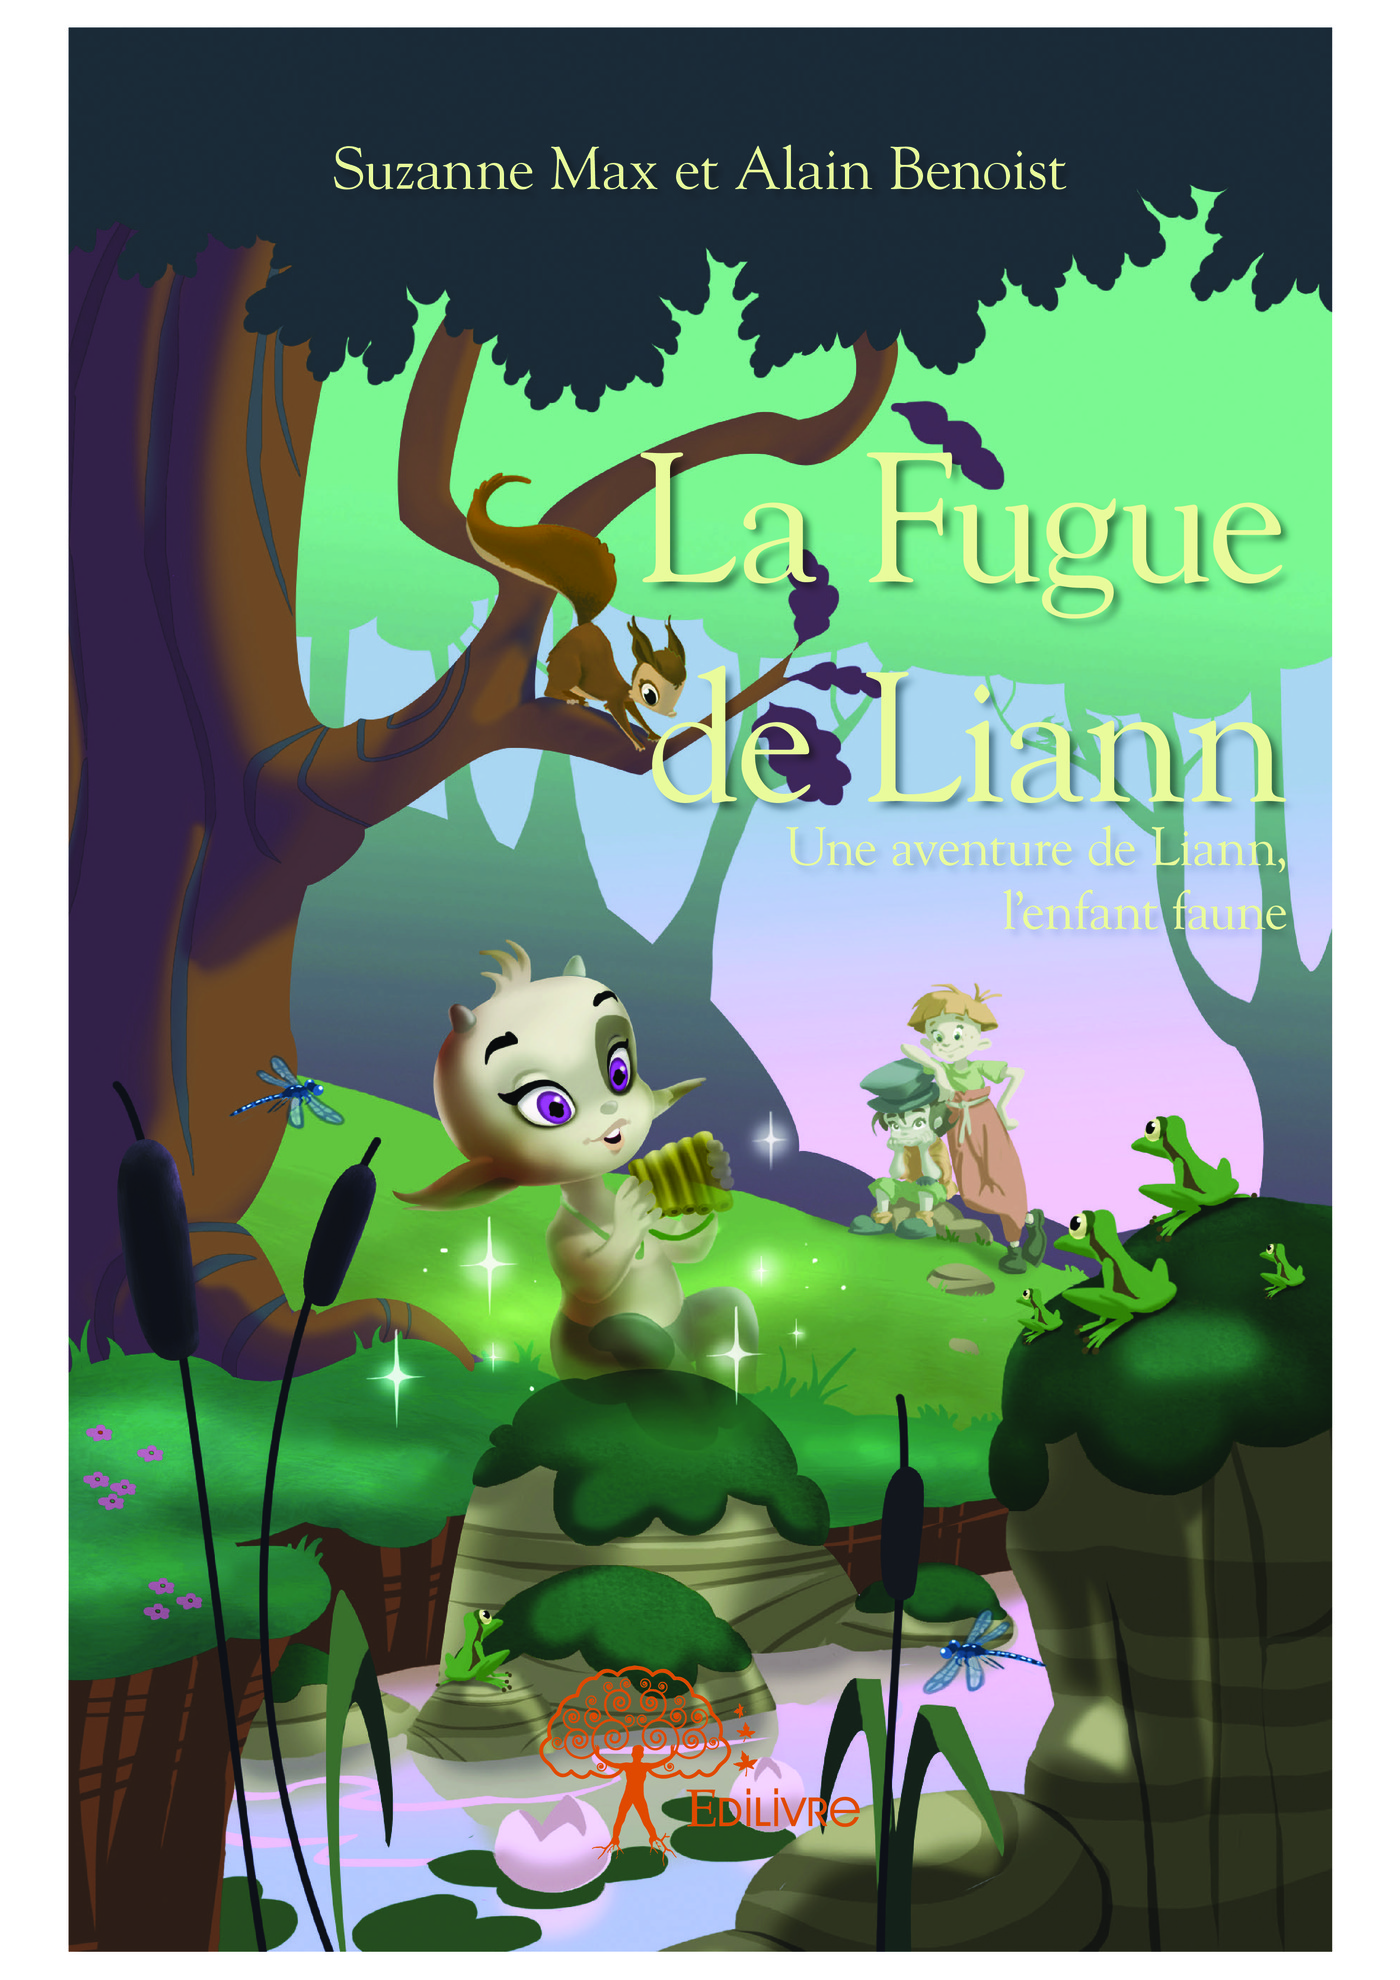 La Fugue de Liann